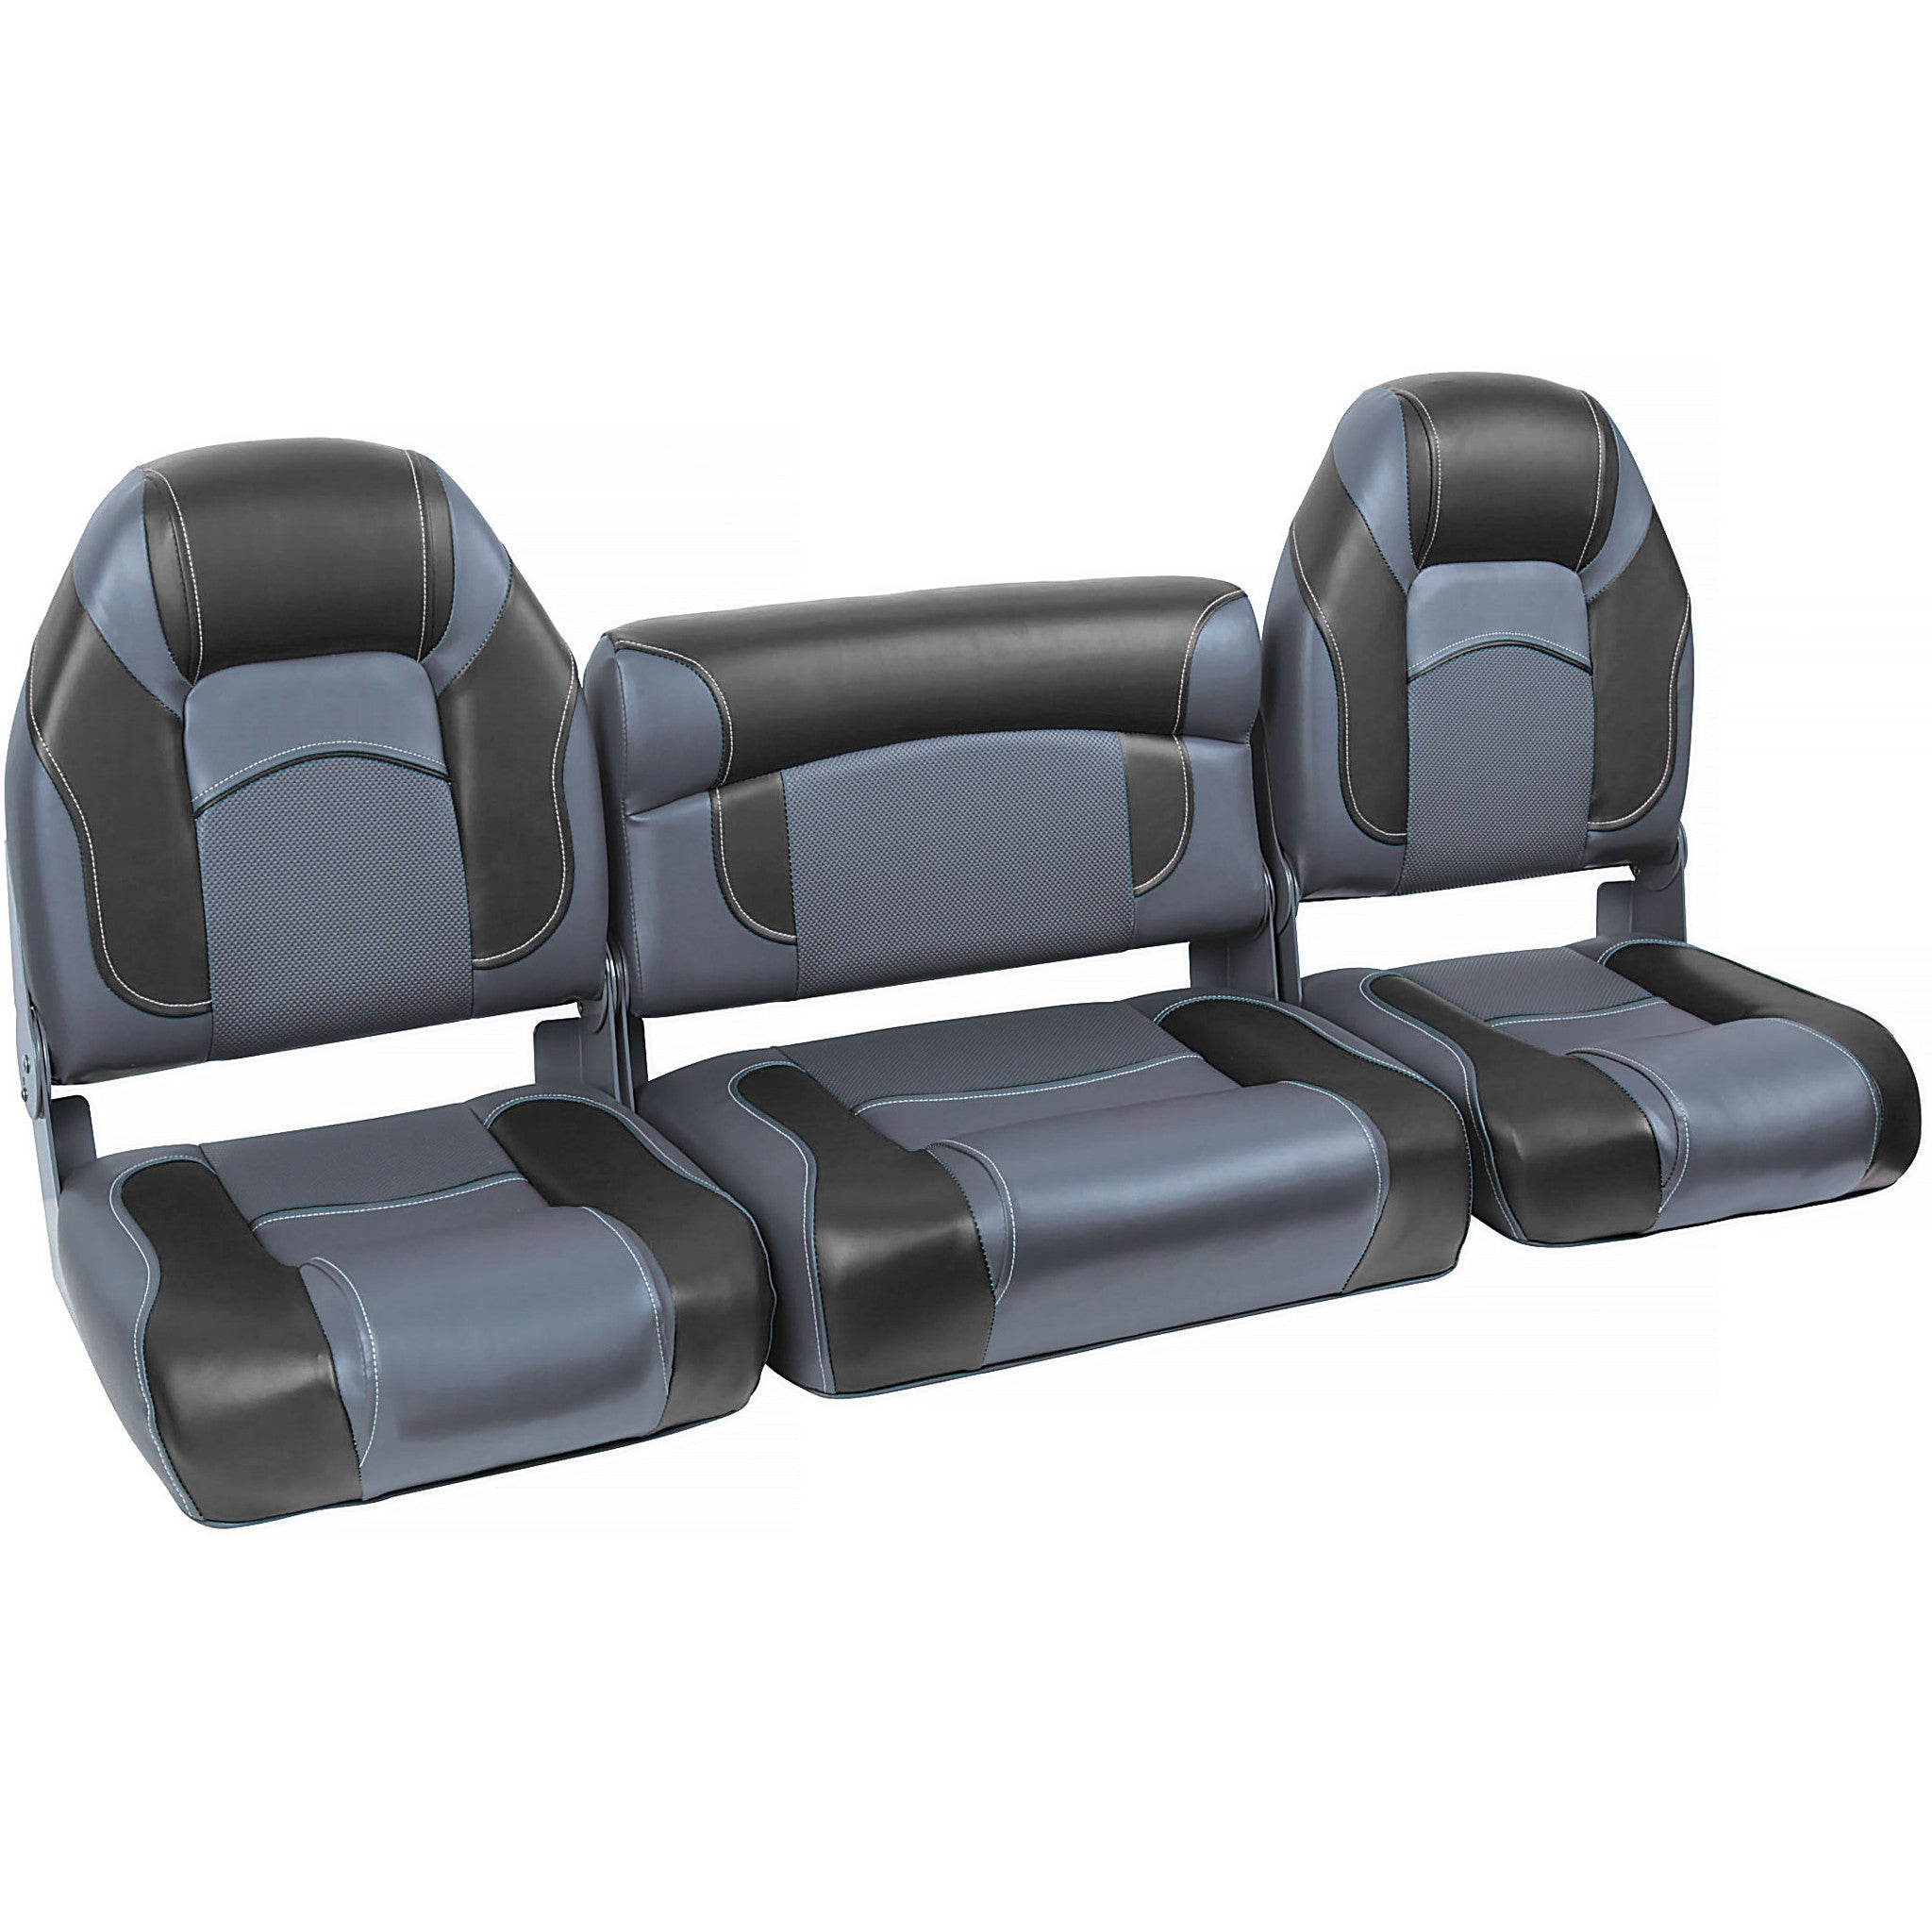 58 Fold Down Bench Seats Boat Seats